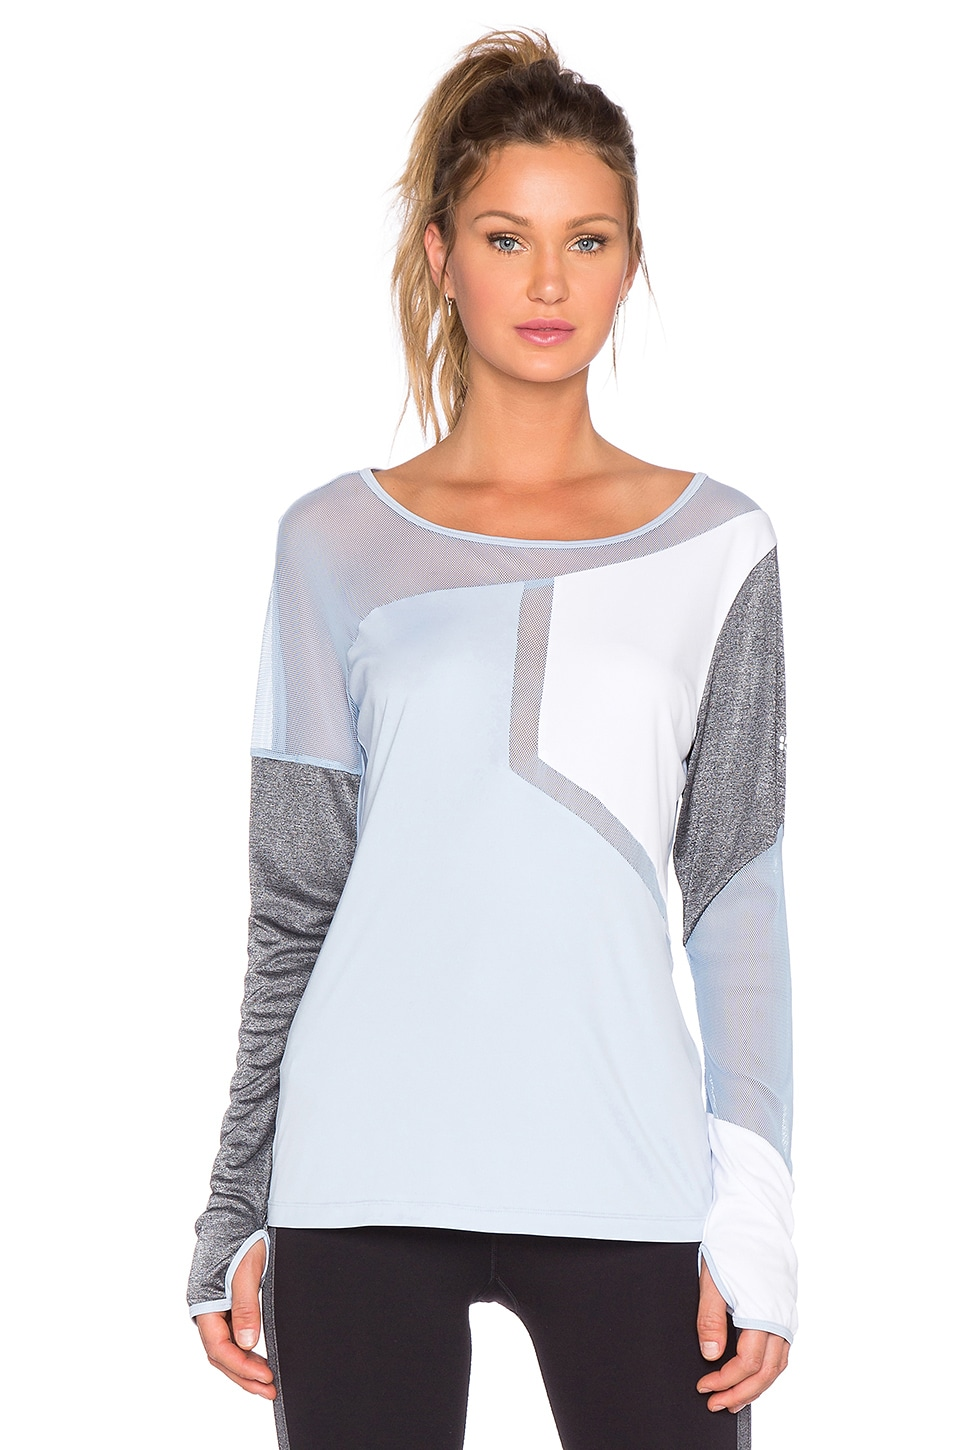 Splits59 Olivia Matrix Long Sleeve Tee in Crystal, White & Heather Grey